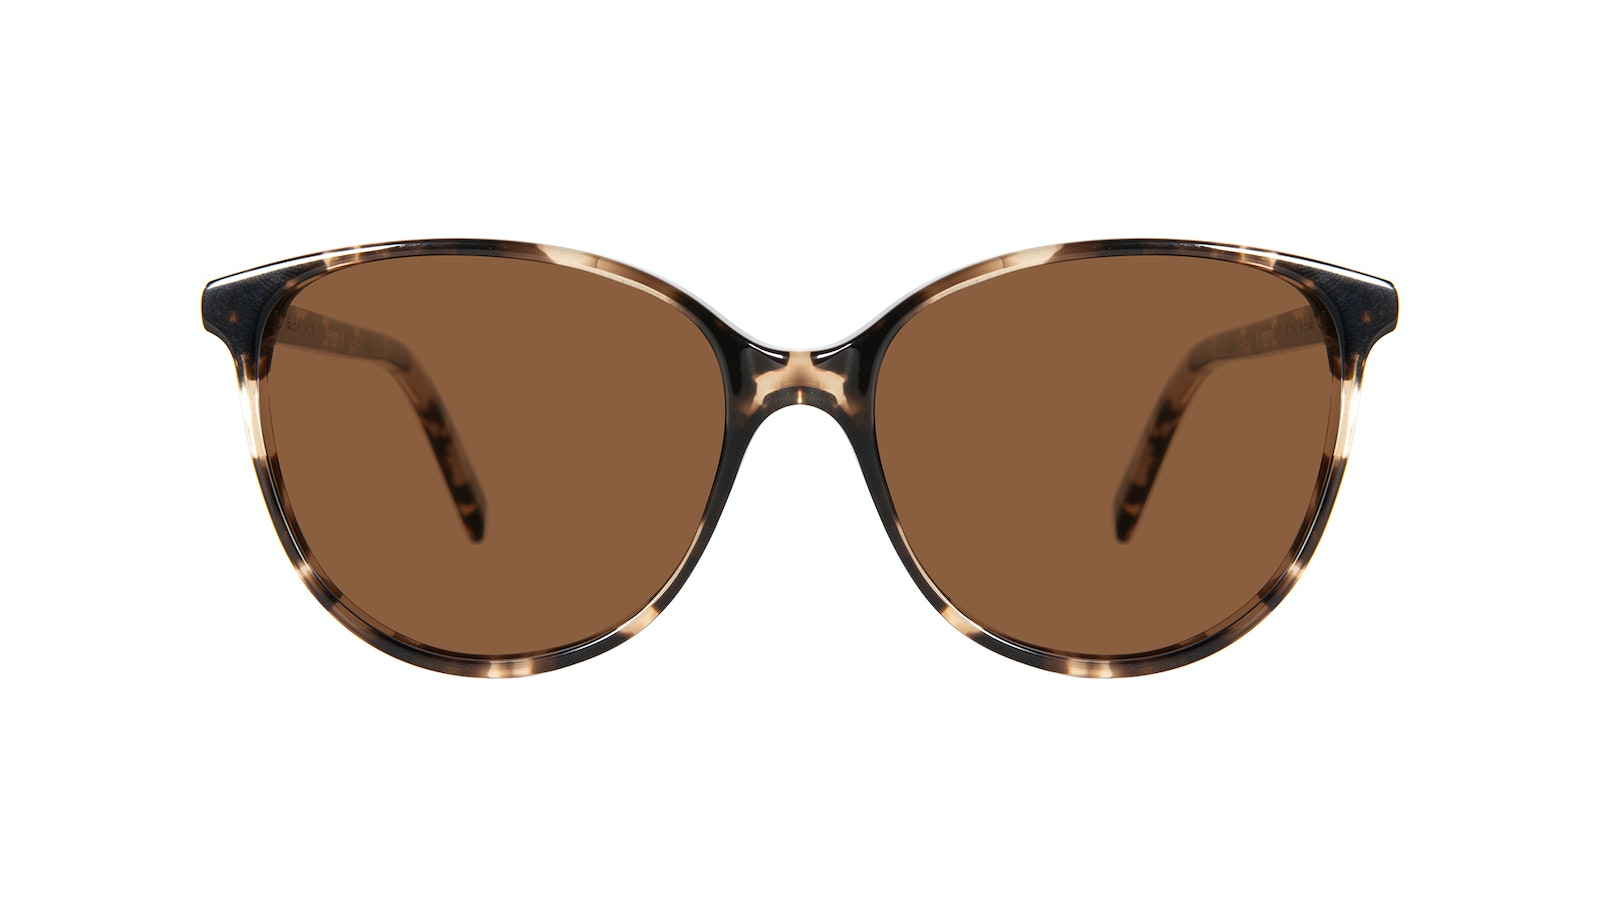 Affordable Fashion Glasses Round Sunglasses Women Imagine Petite Leopard